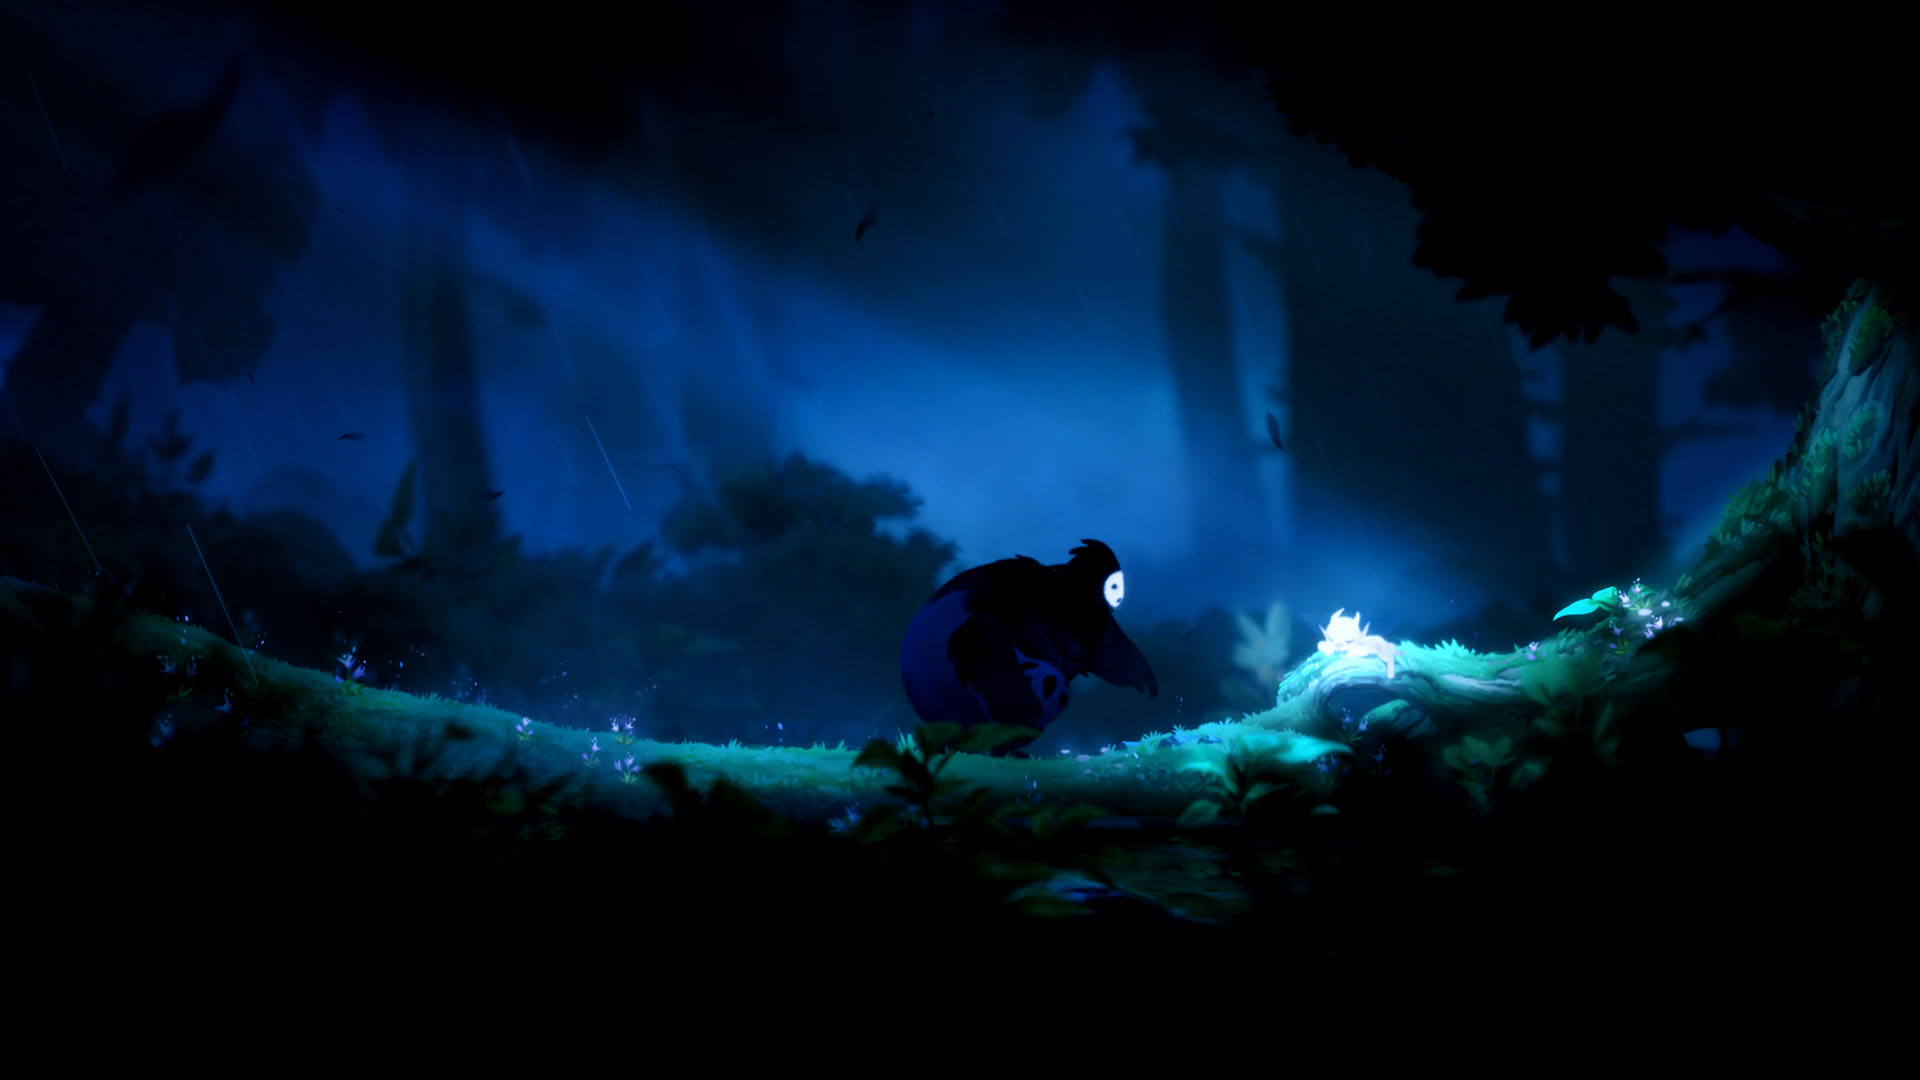 Ori And The Blind Forest Wallpapers High Quality Download Free